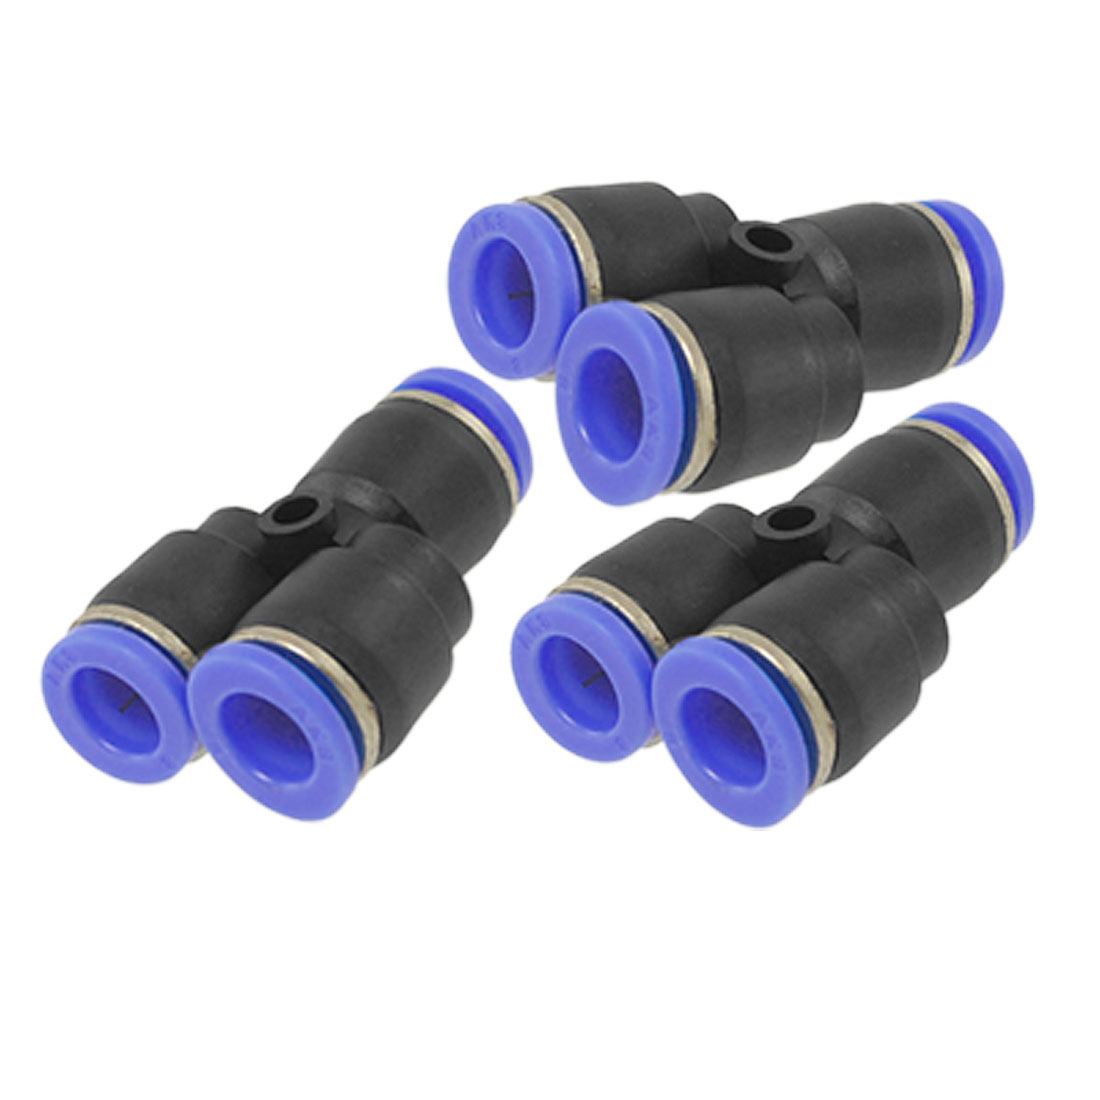 3 Pcs Y Shaped 8mm Quick Joint Air Pneumatic Push In Fittings